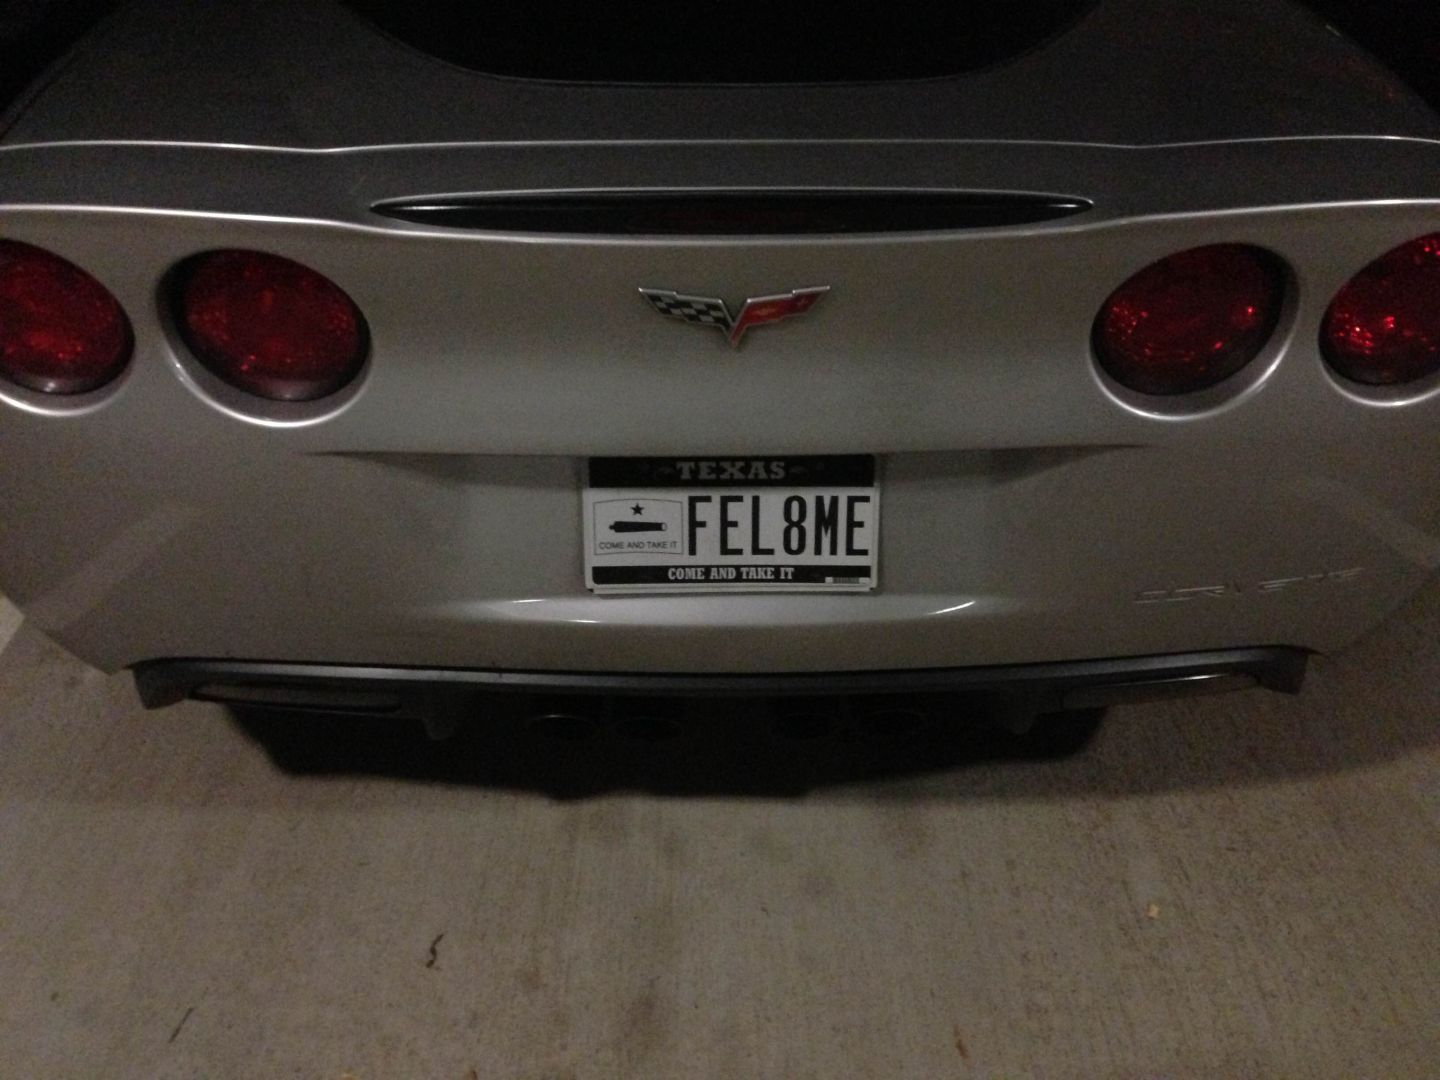 Corvette Vanity Plate Talks Dirty in Texas - autoevolution